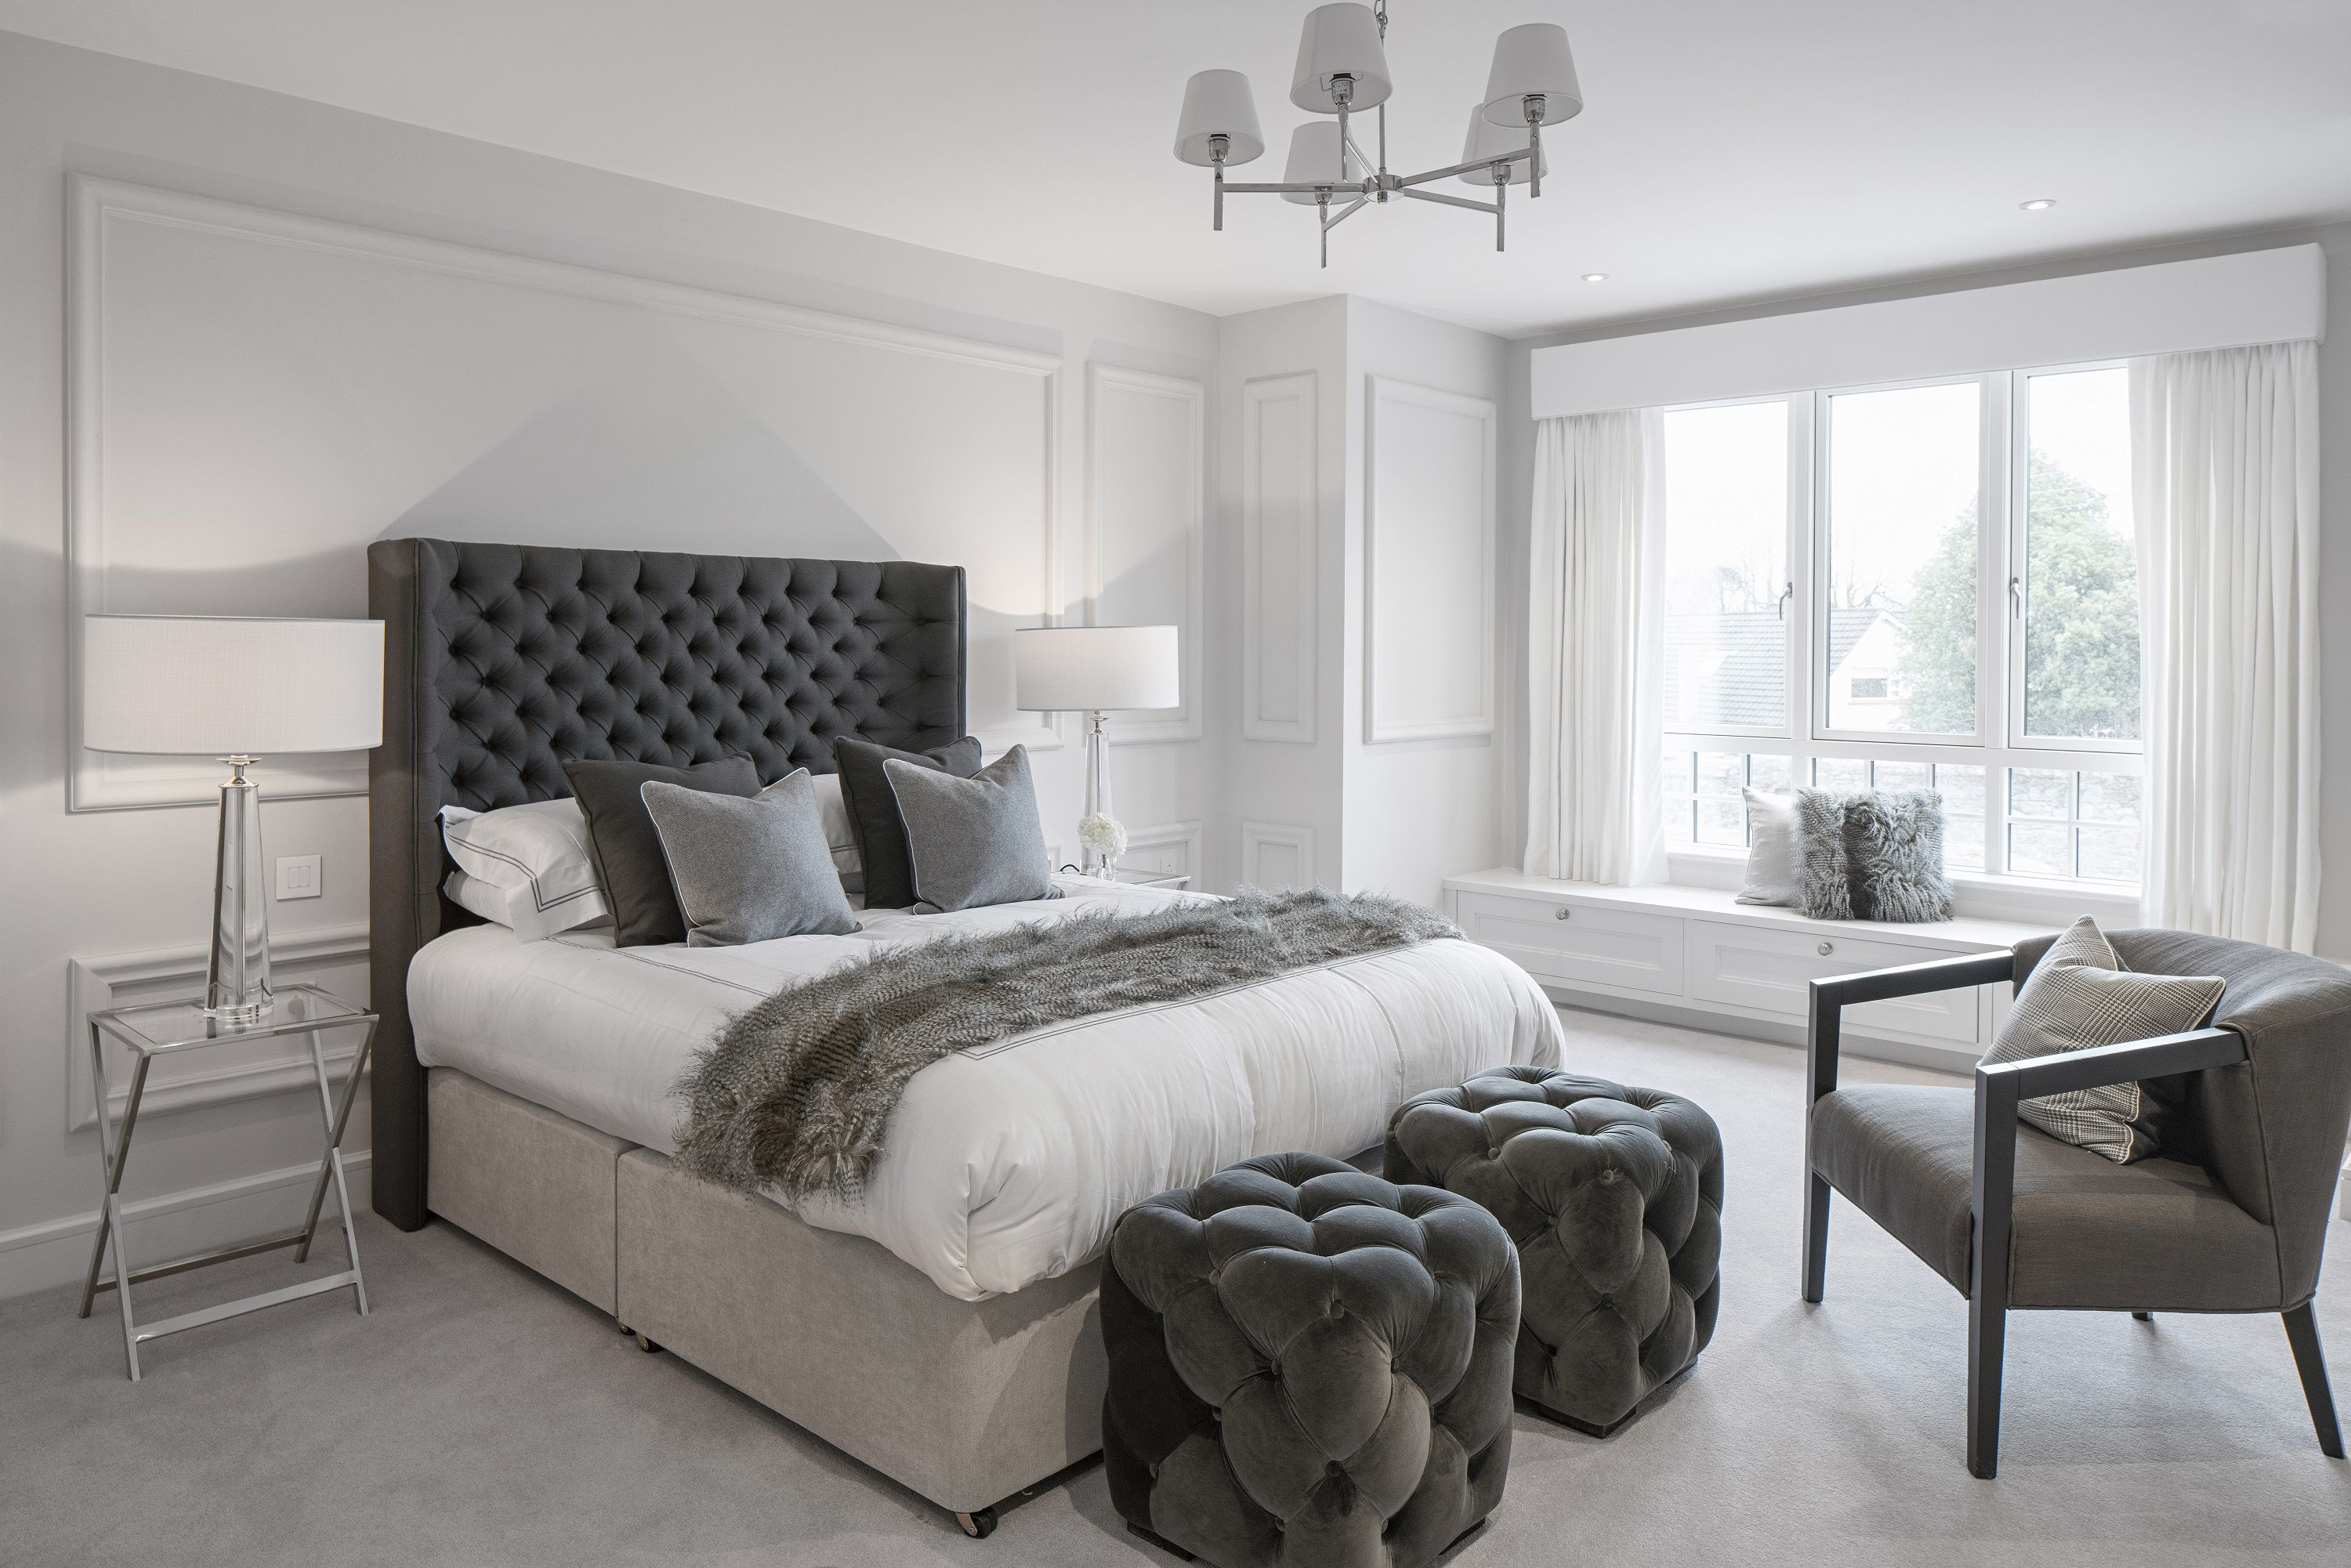 example of back wall grand for head board | Home bedroom ...